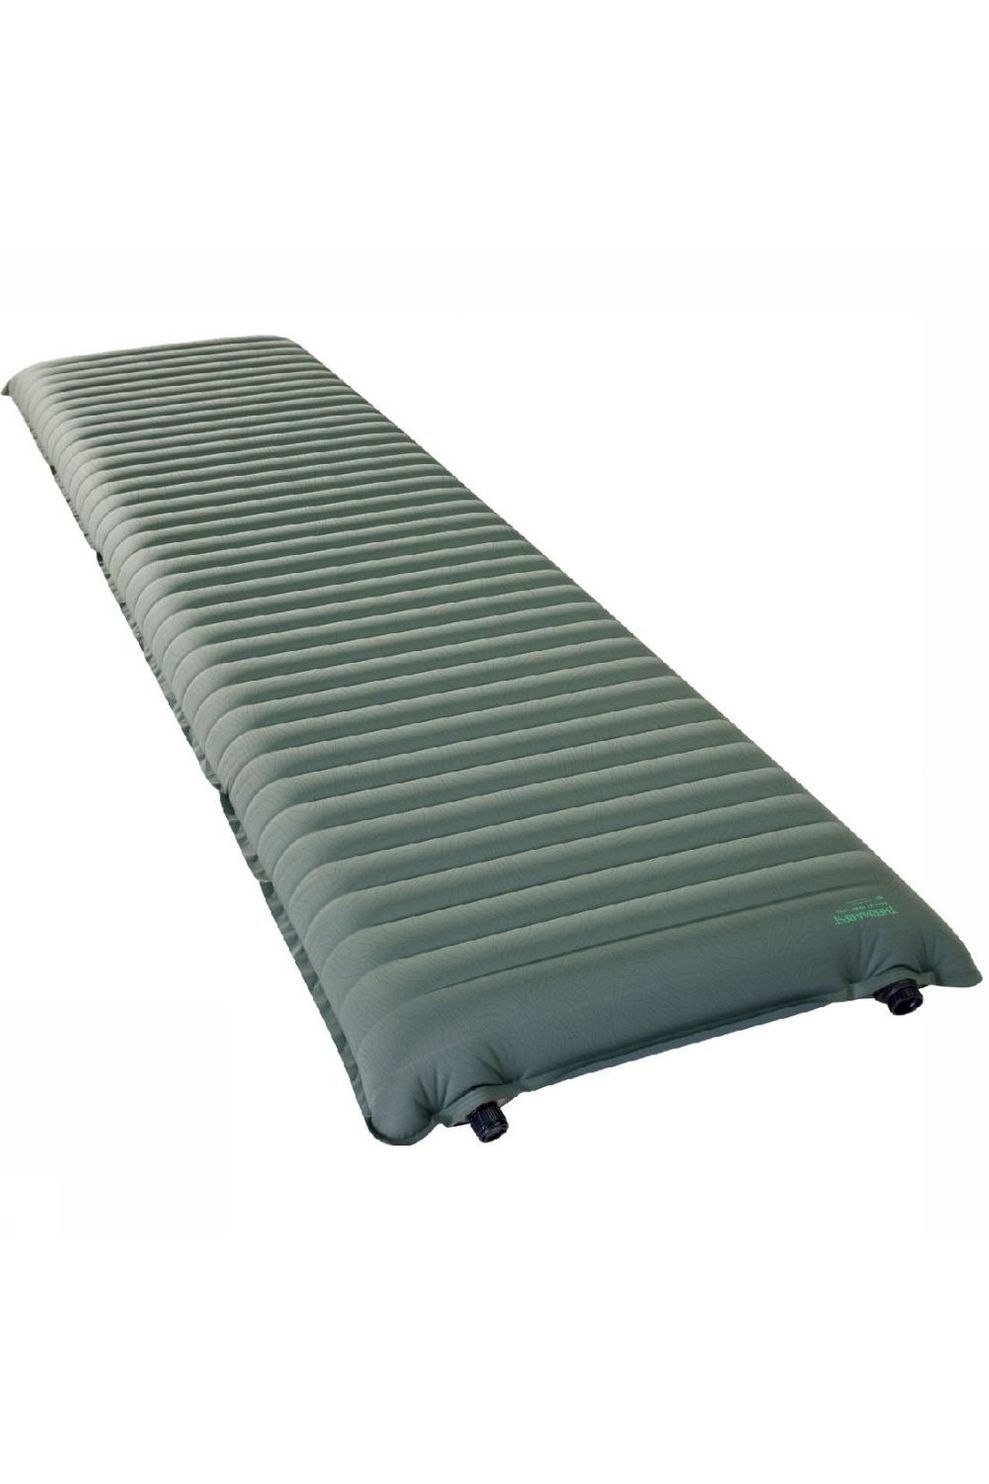 Therm-a-Rest Luchtbed Neoair Topo Luxe R - DonkerGroen